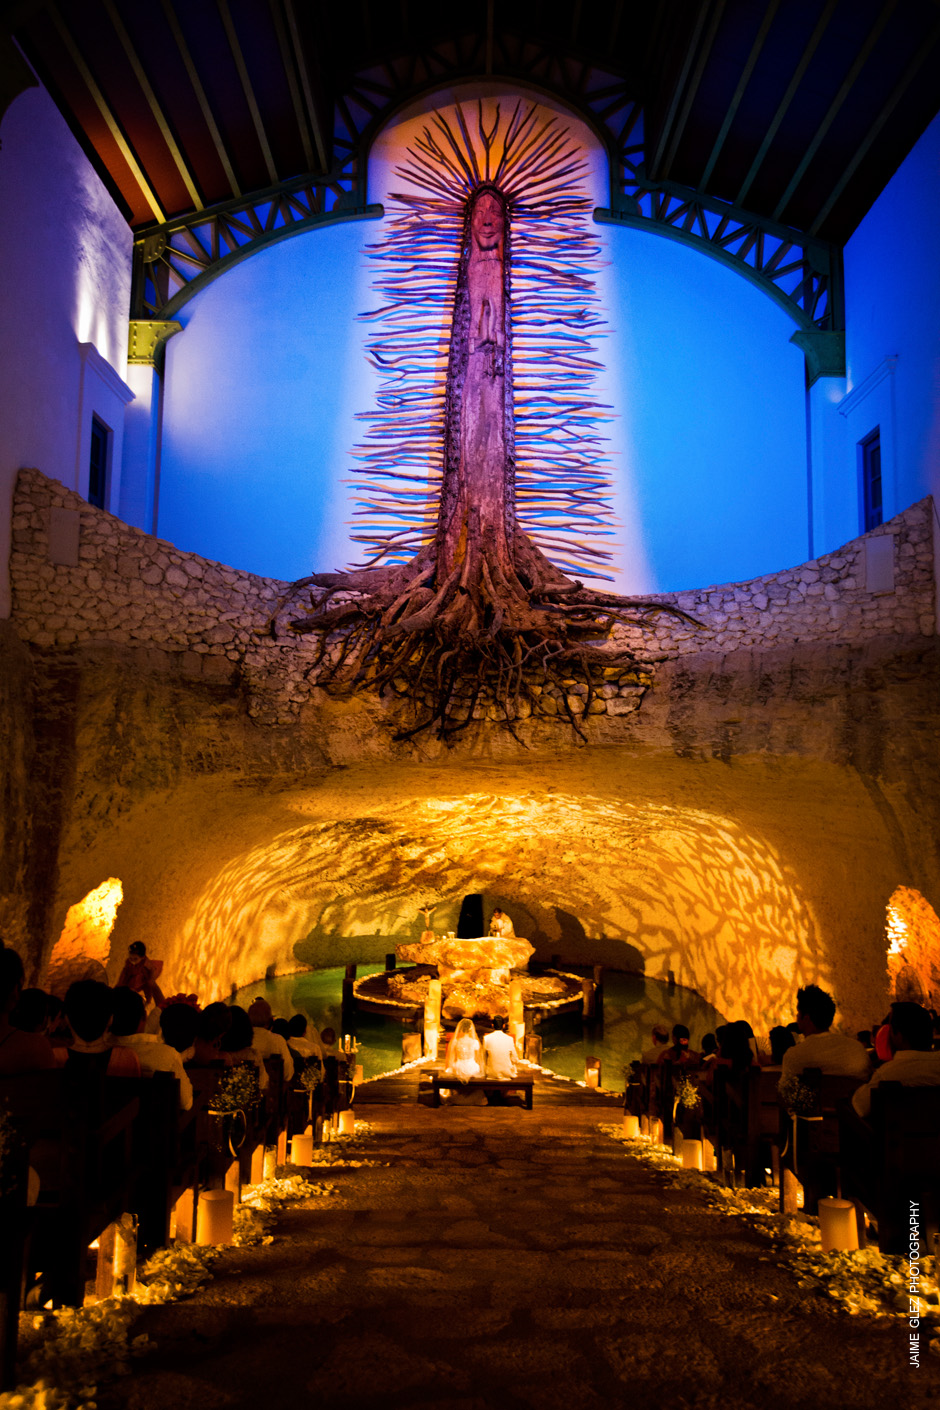 Amazing front view of our Lady of Guadalupe Chapel in Xcaret, Mayan Riviera, Mexico.